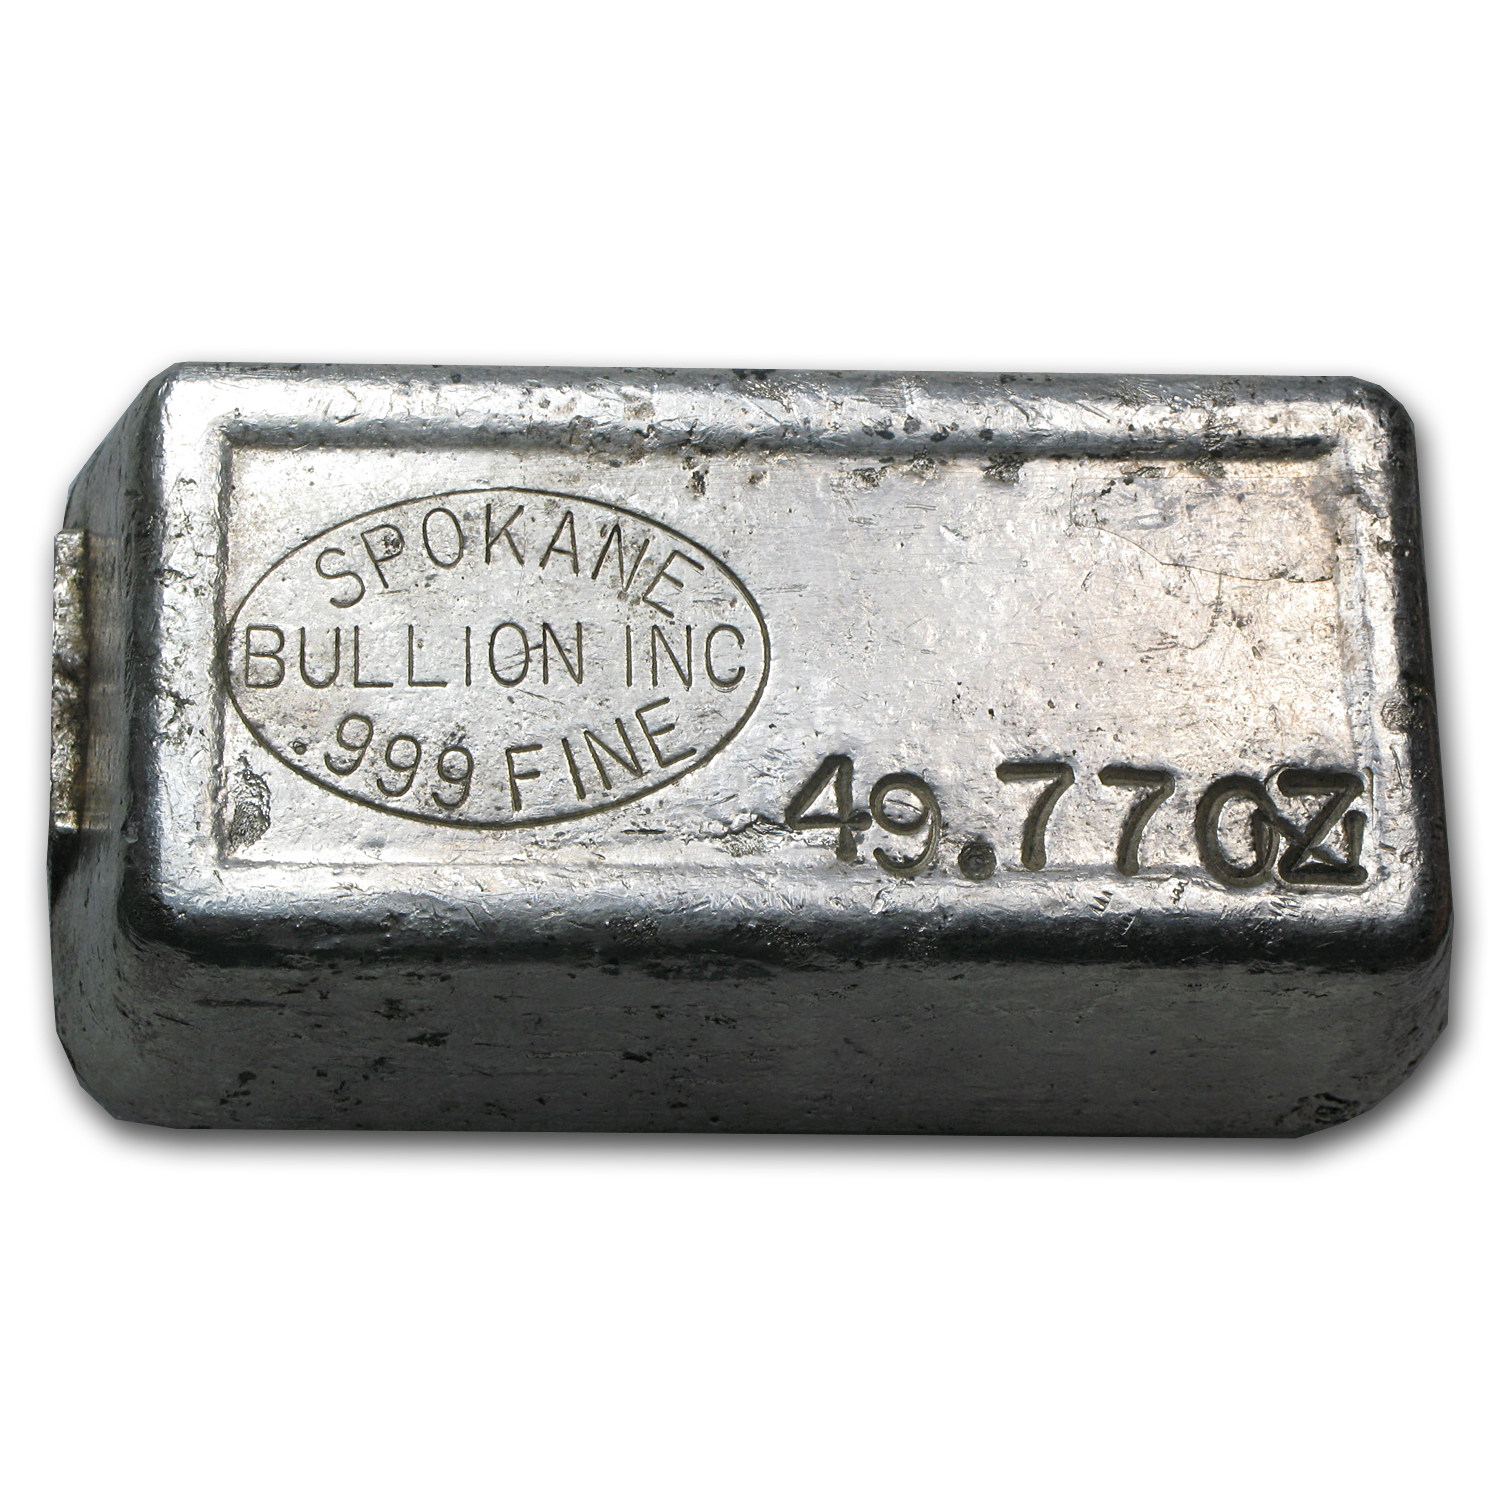 49.77 oz Silver Bars - Spokane Bullion Inc